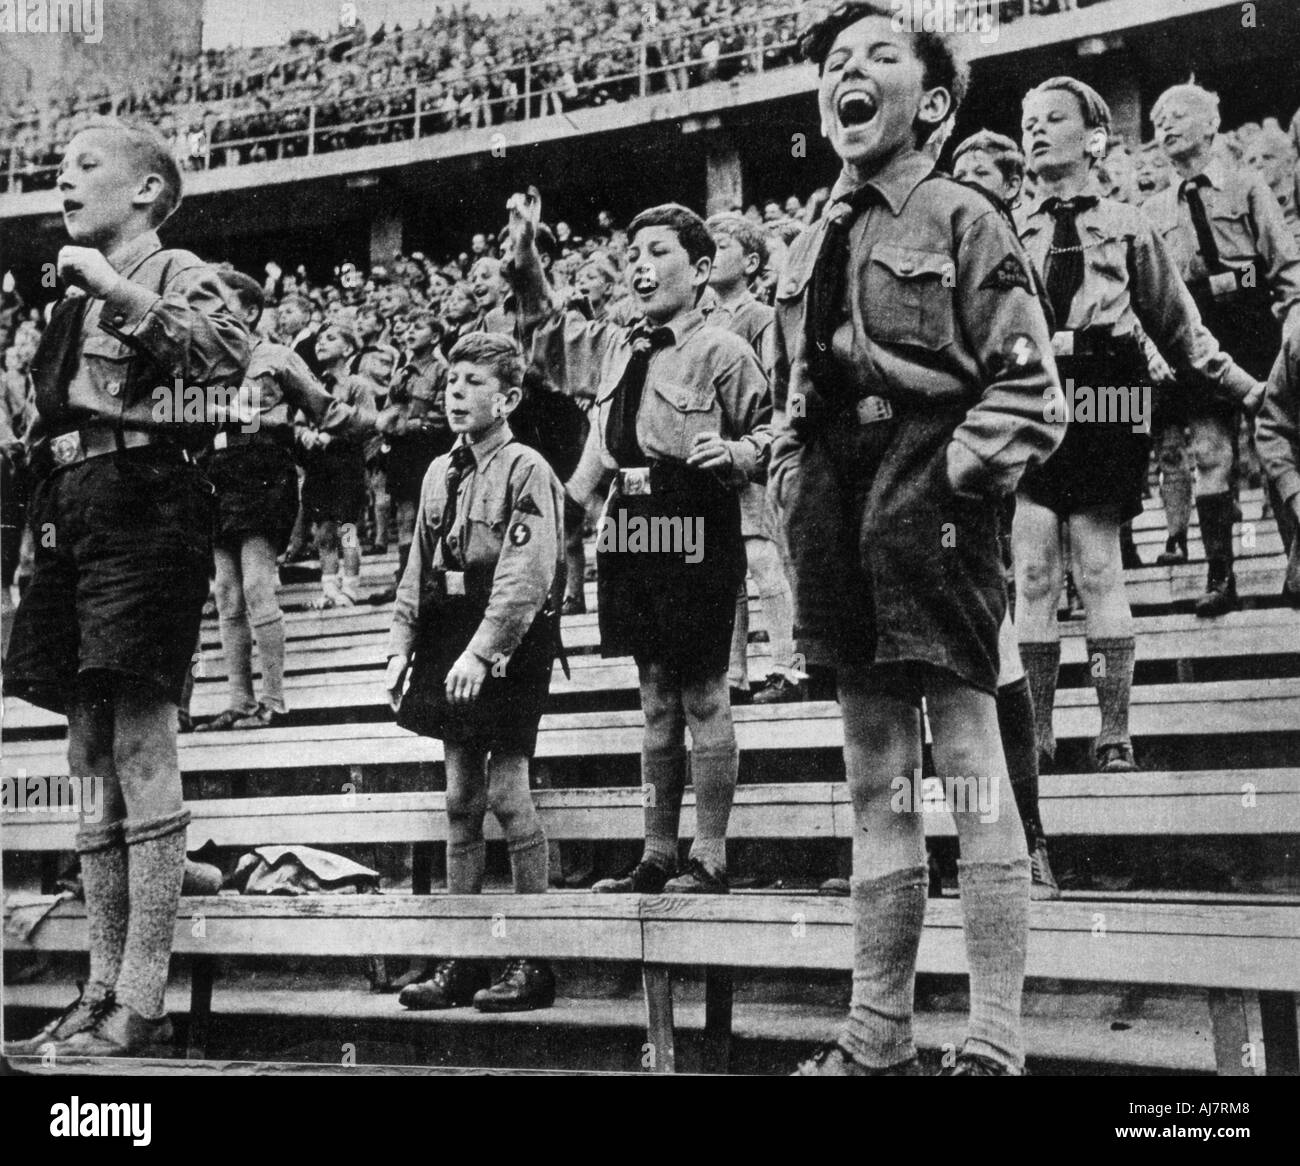 the impact of the nazi regime on the german youth the participation in youth organizations education The ideology of the ss was,  not displaying the nazi flag, and for their non-participation in nazi organizations many were sent to concentration camps where they perished  this was essentially an effort to purge the german people of the nazi ideology that had.